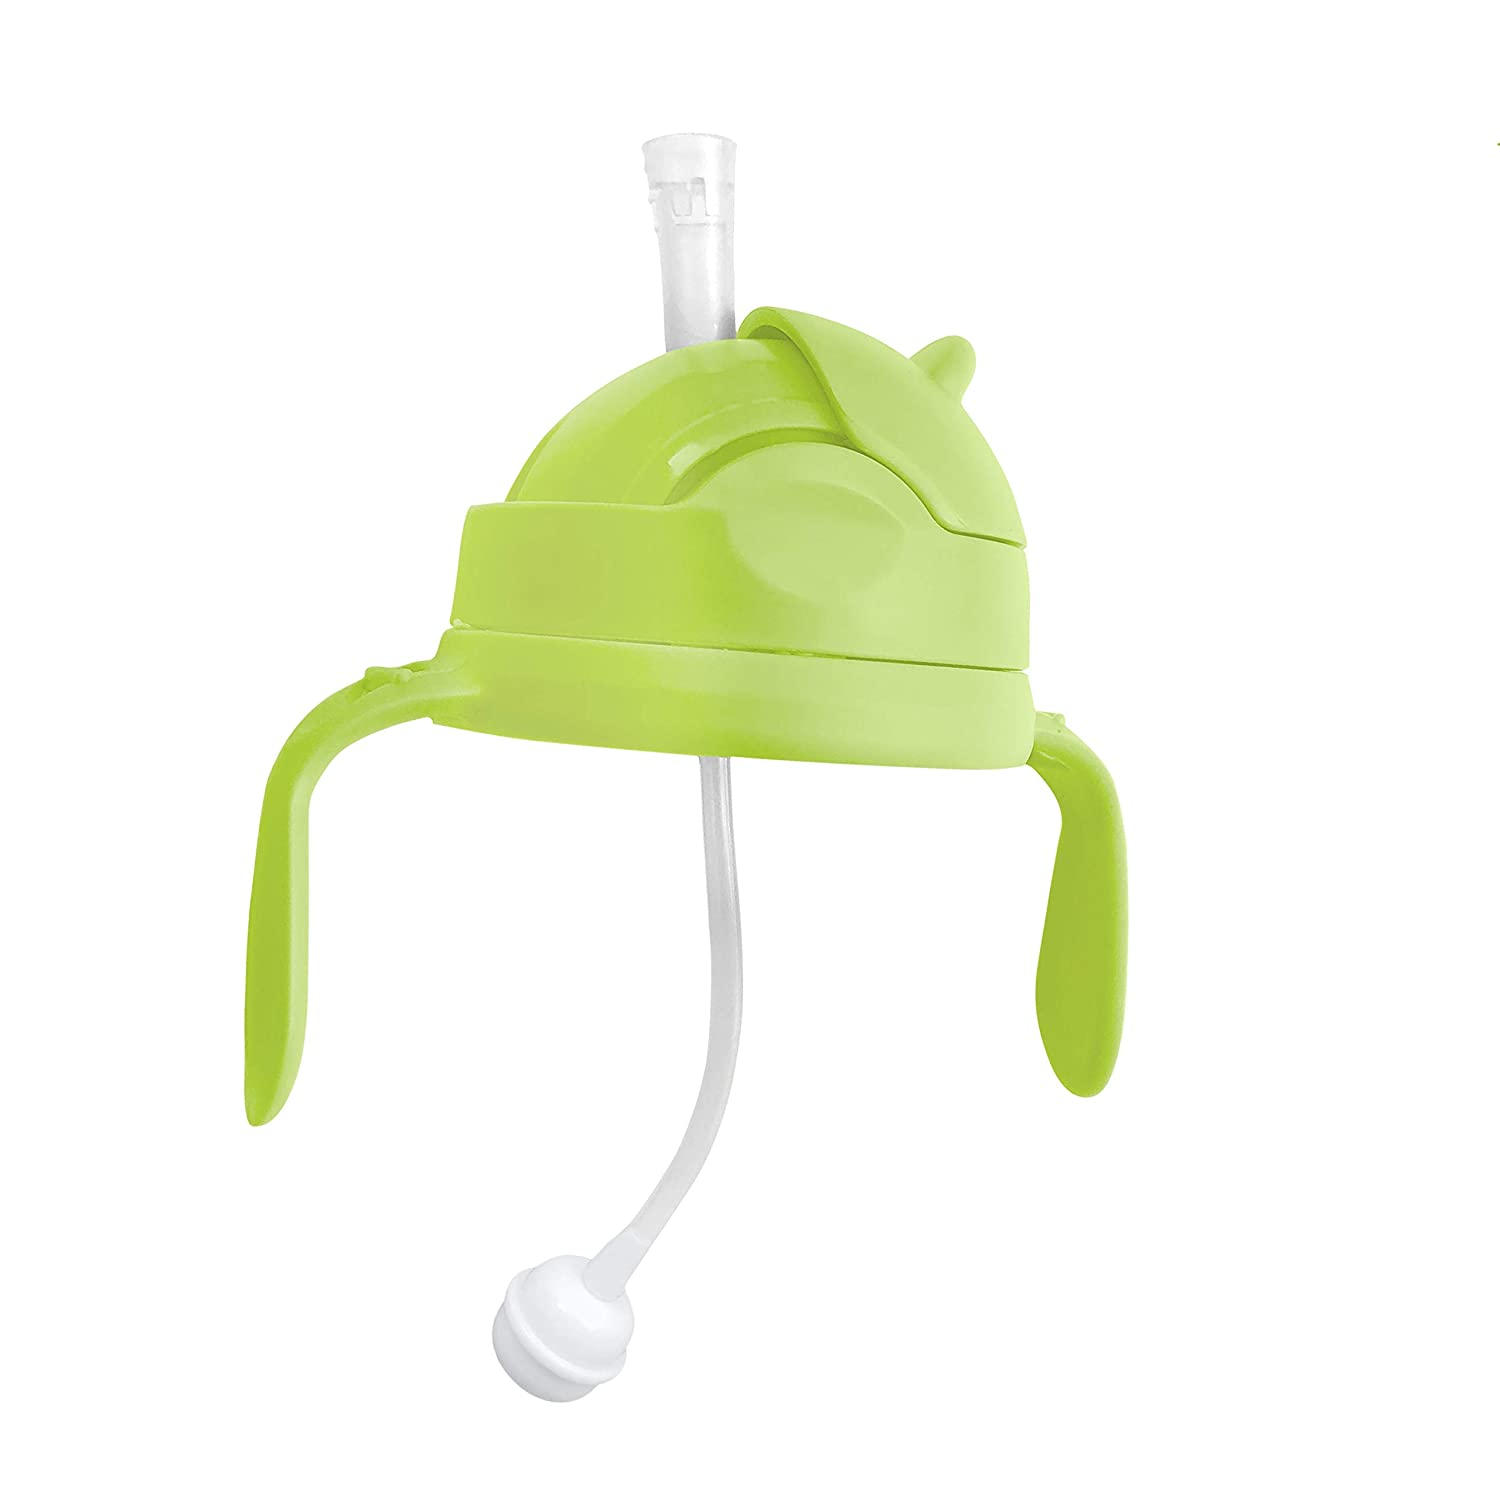 3-in-1 Straw Sippy Cup Conversion Kit for Comotomo Baby Bottle, 5 Ounce and 8 Ounce (Weighted Straw, Green)